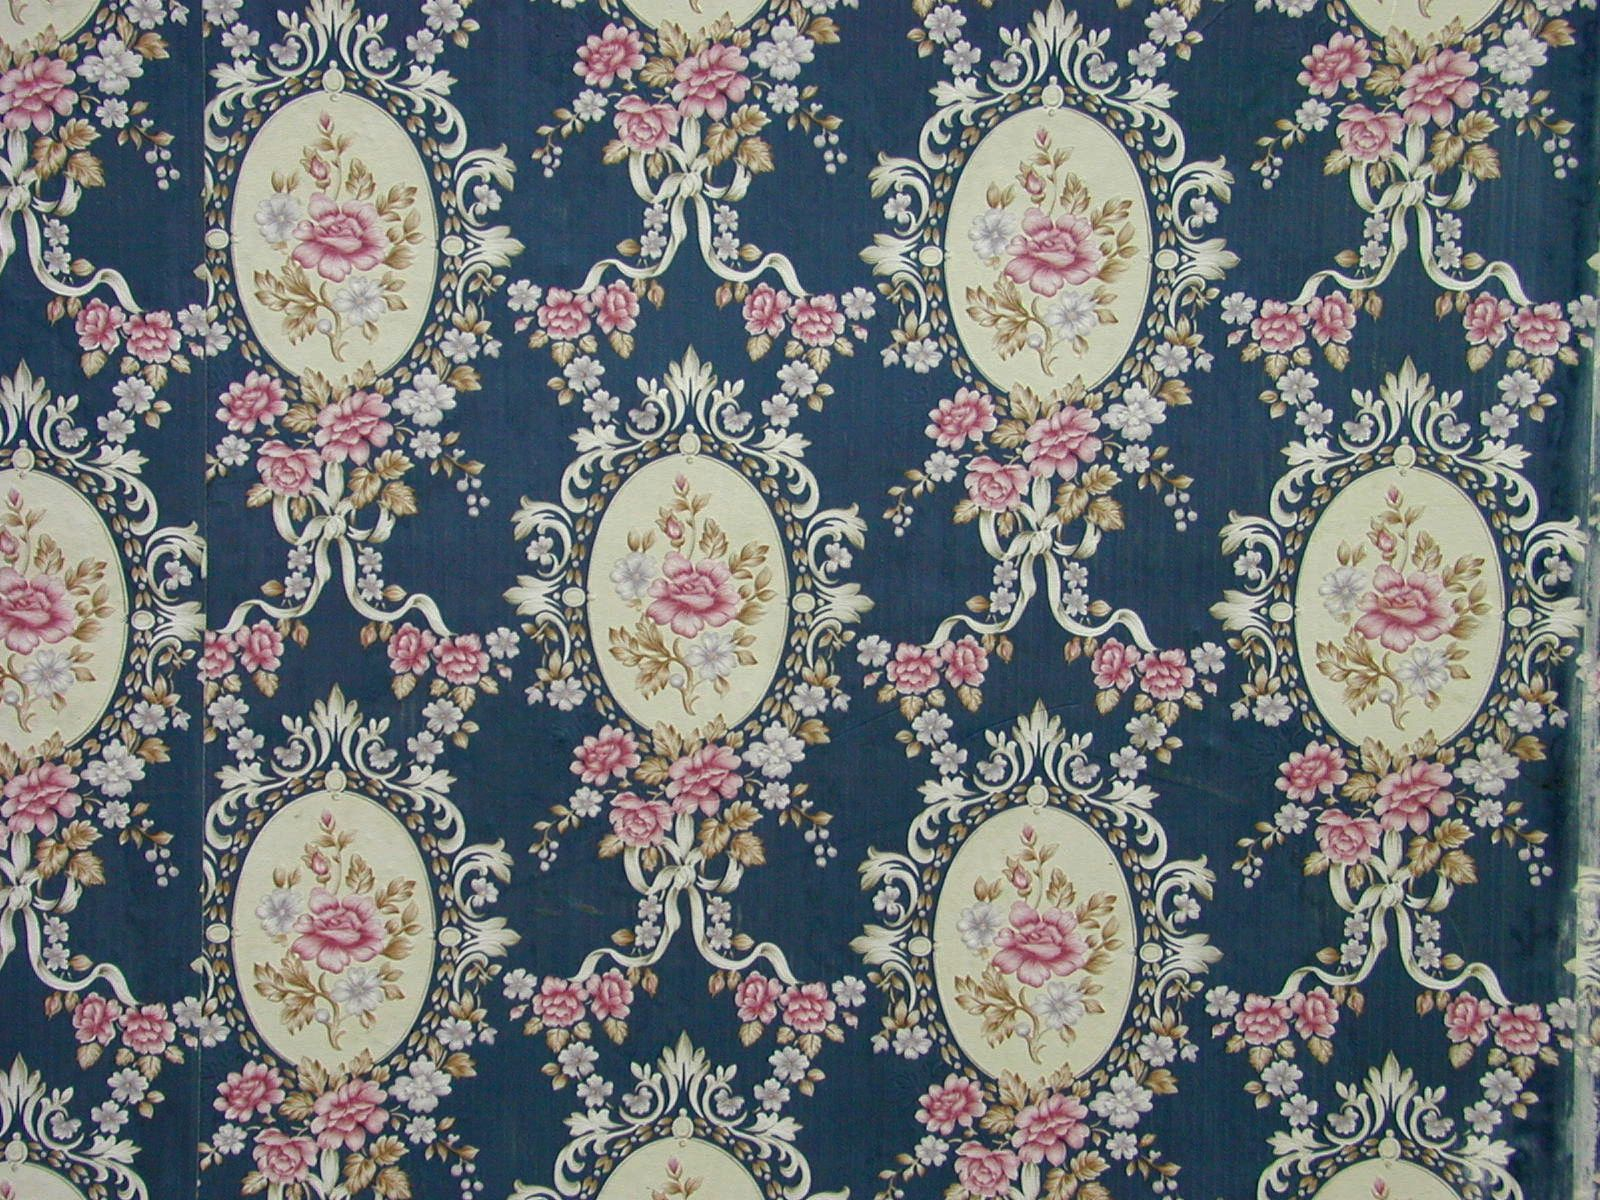 Free victorian wallpaper 1600x1200 8813 for Victorian wallpaper